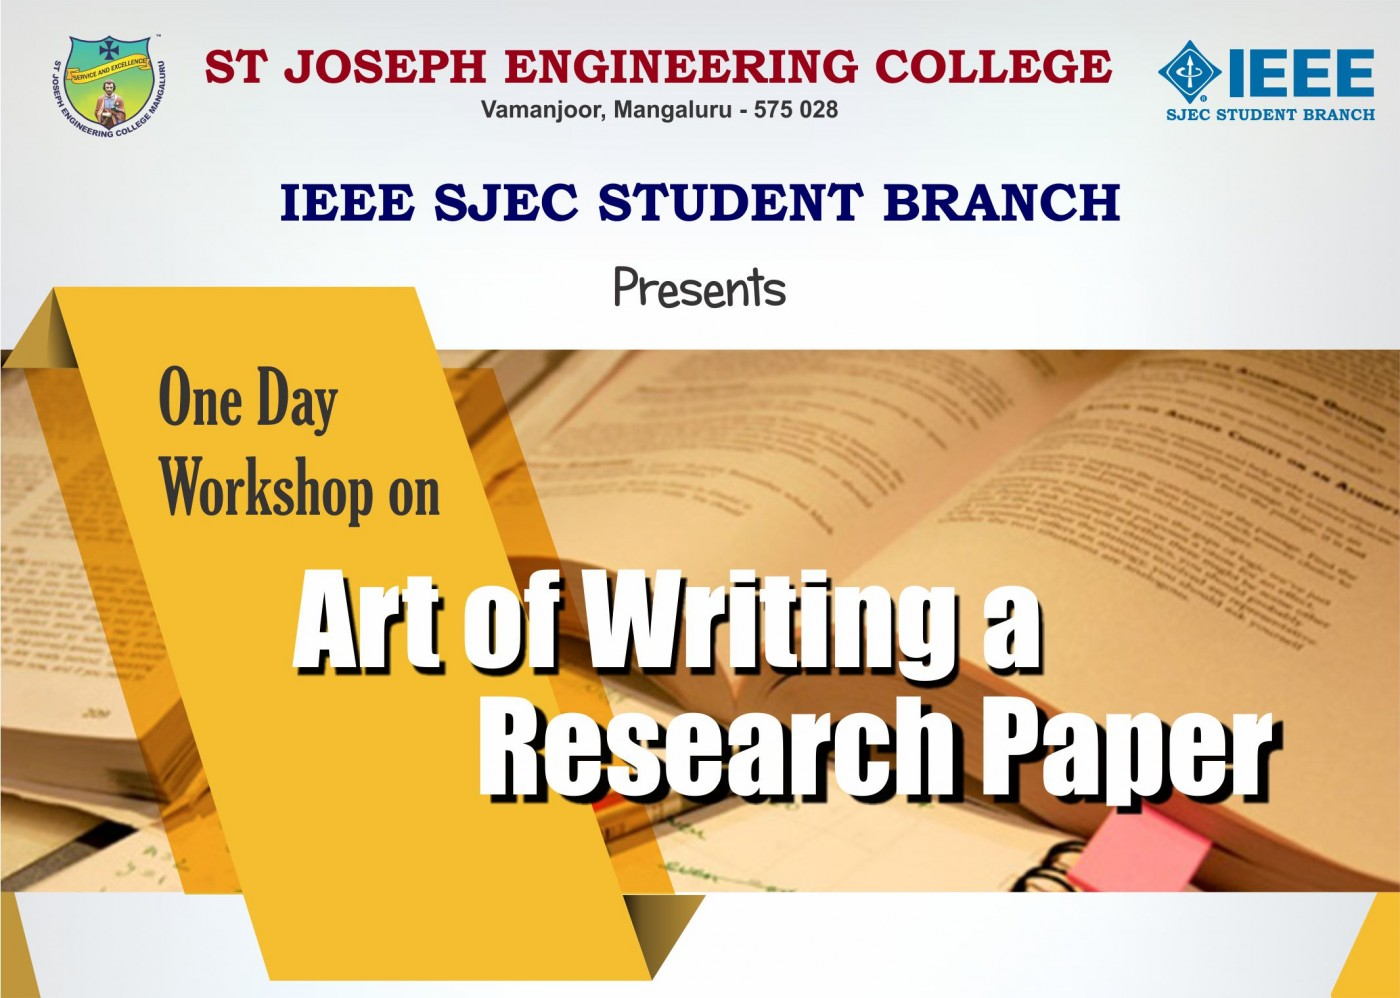 005 Research Paper About Writing Workshop Rare Topics Creative 1400